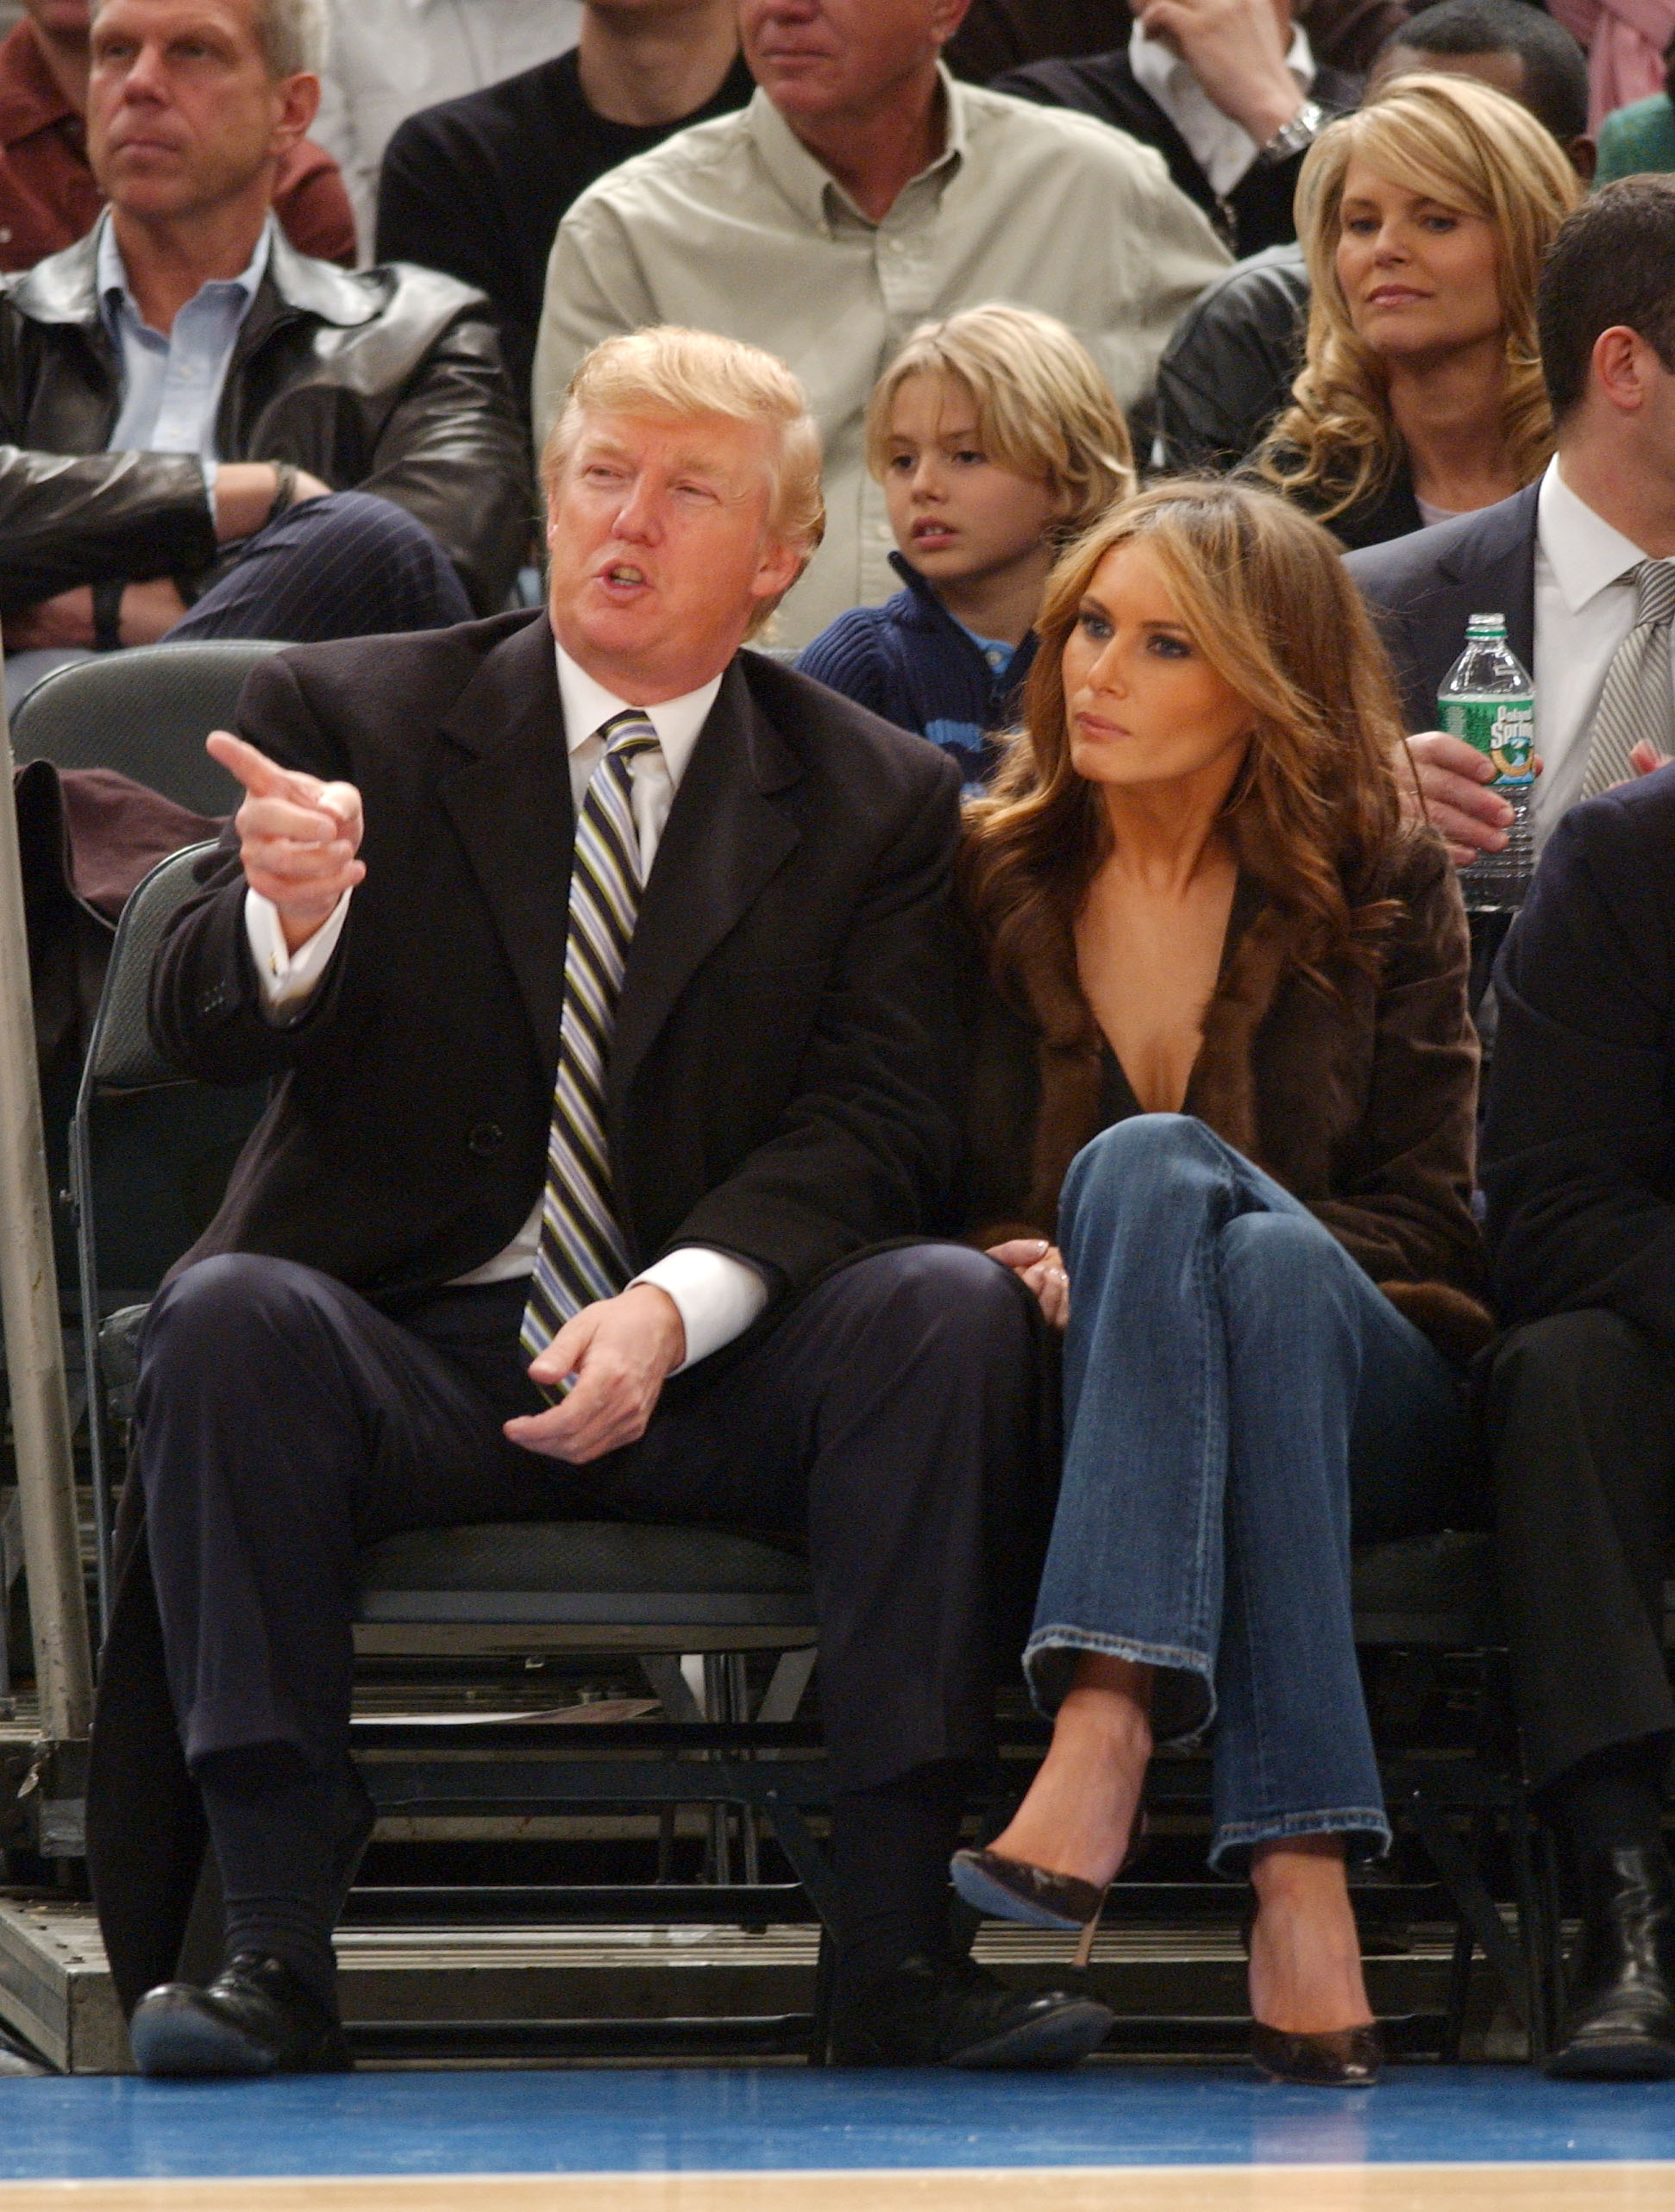 Donald Trump and his wife Melania watch the New York Knicks -vs- Miami Heat basketball game at Madison Square Garden in New York City. (Photo credit: Splash News)